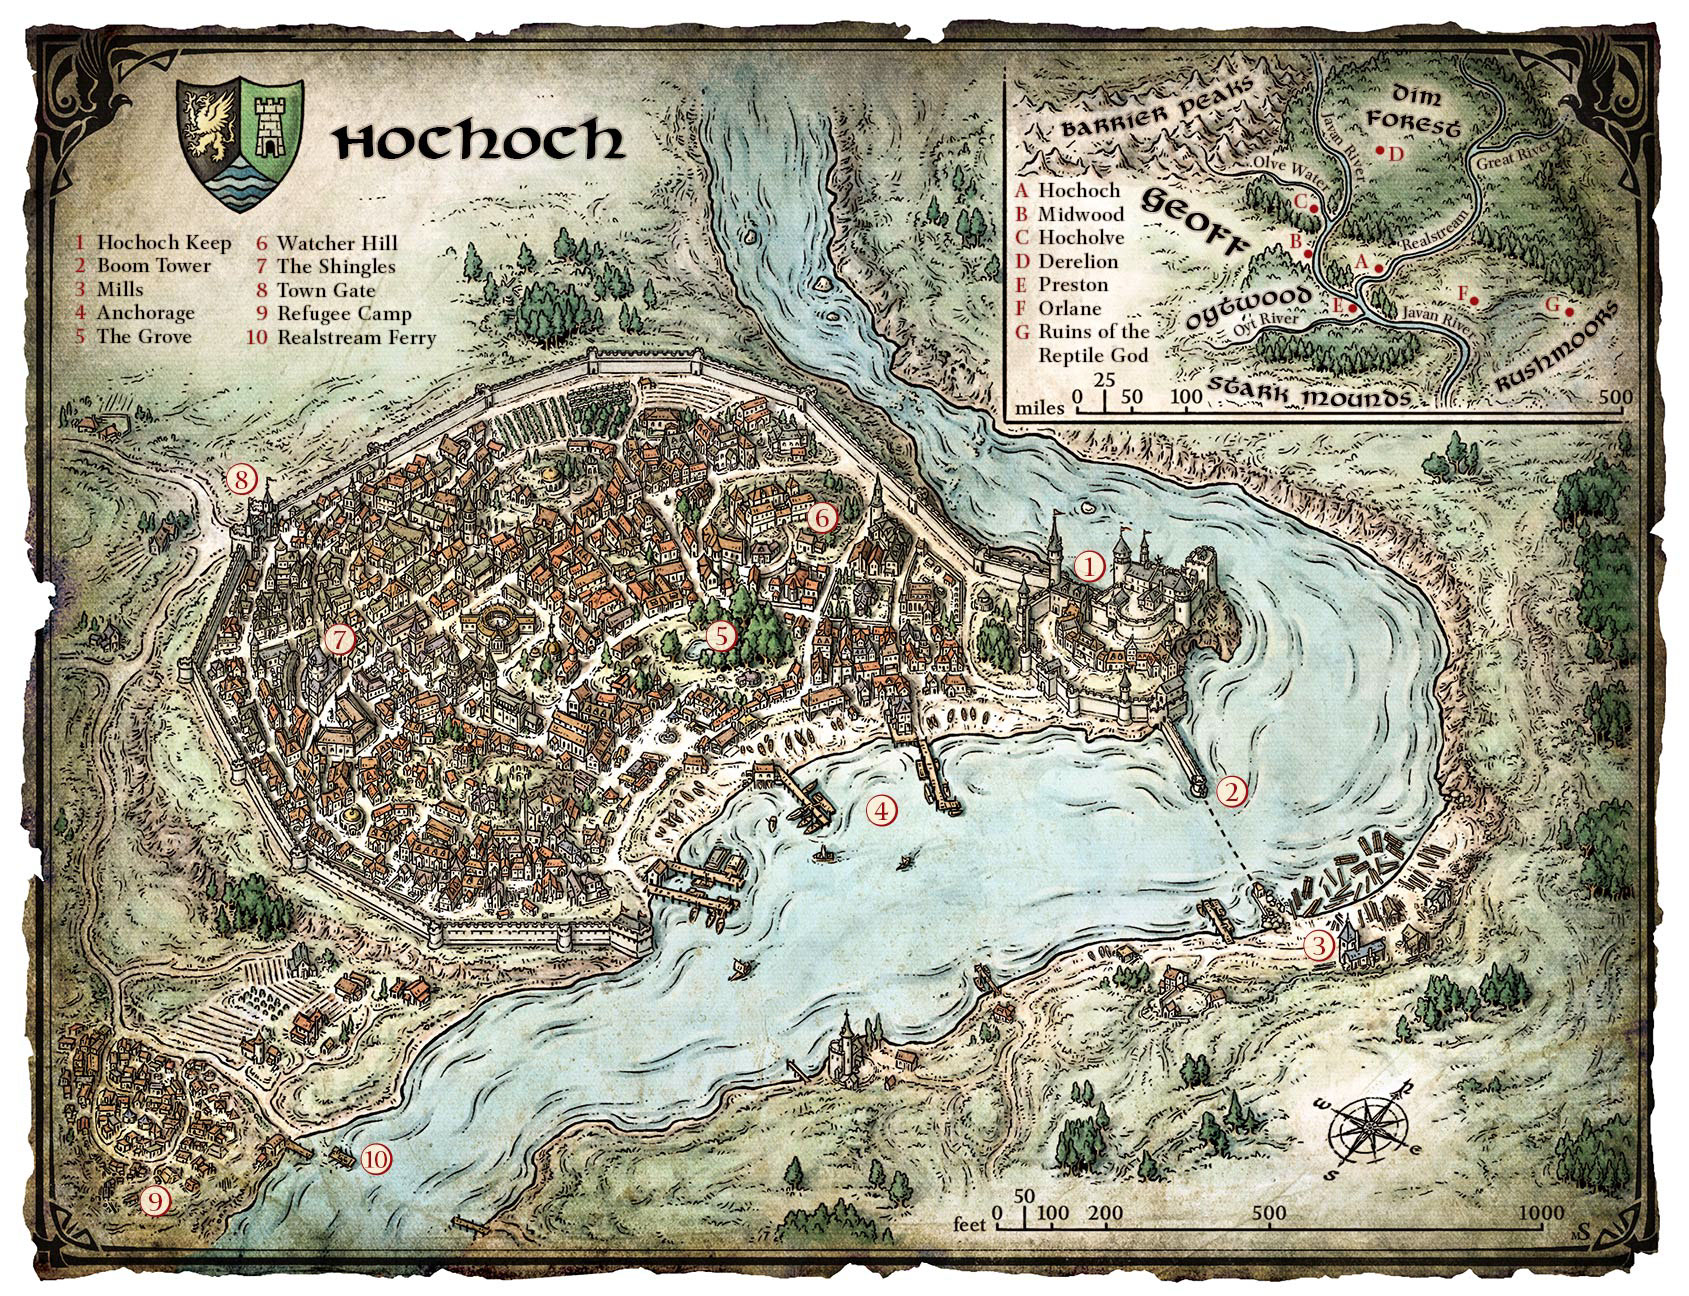 Map of Hochoch